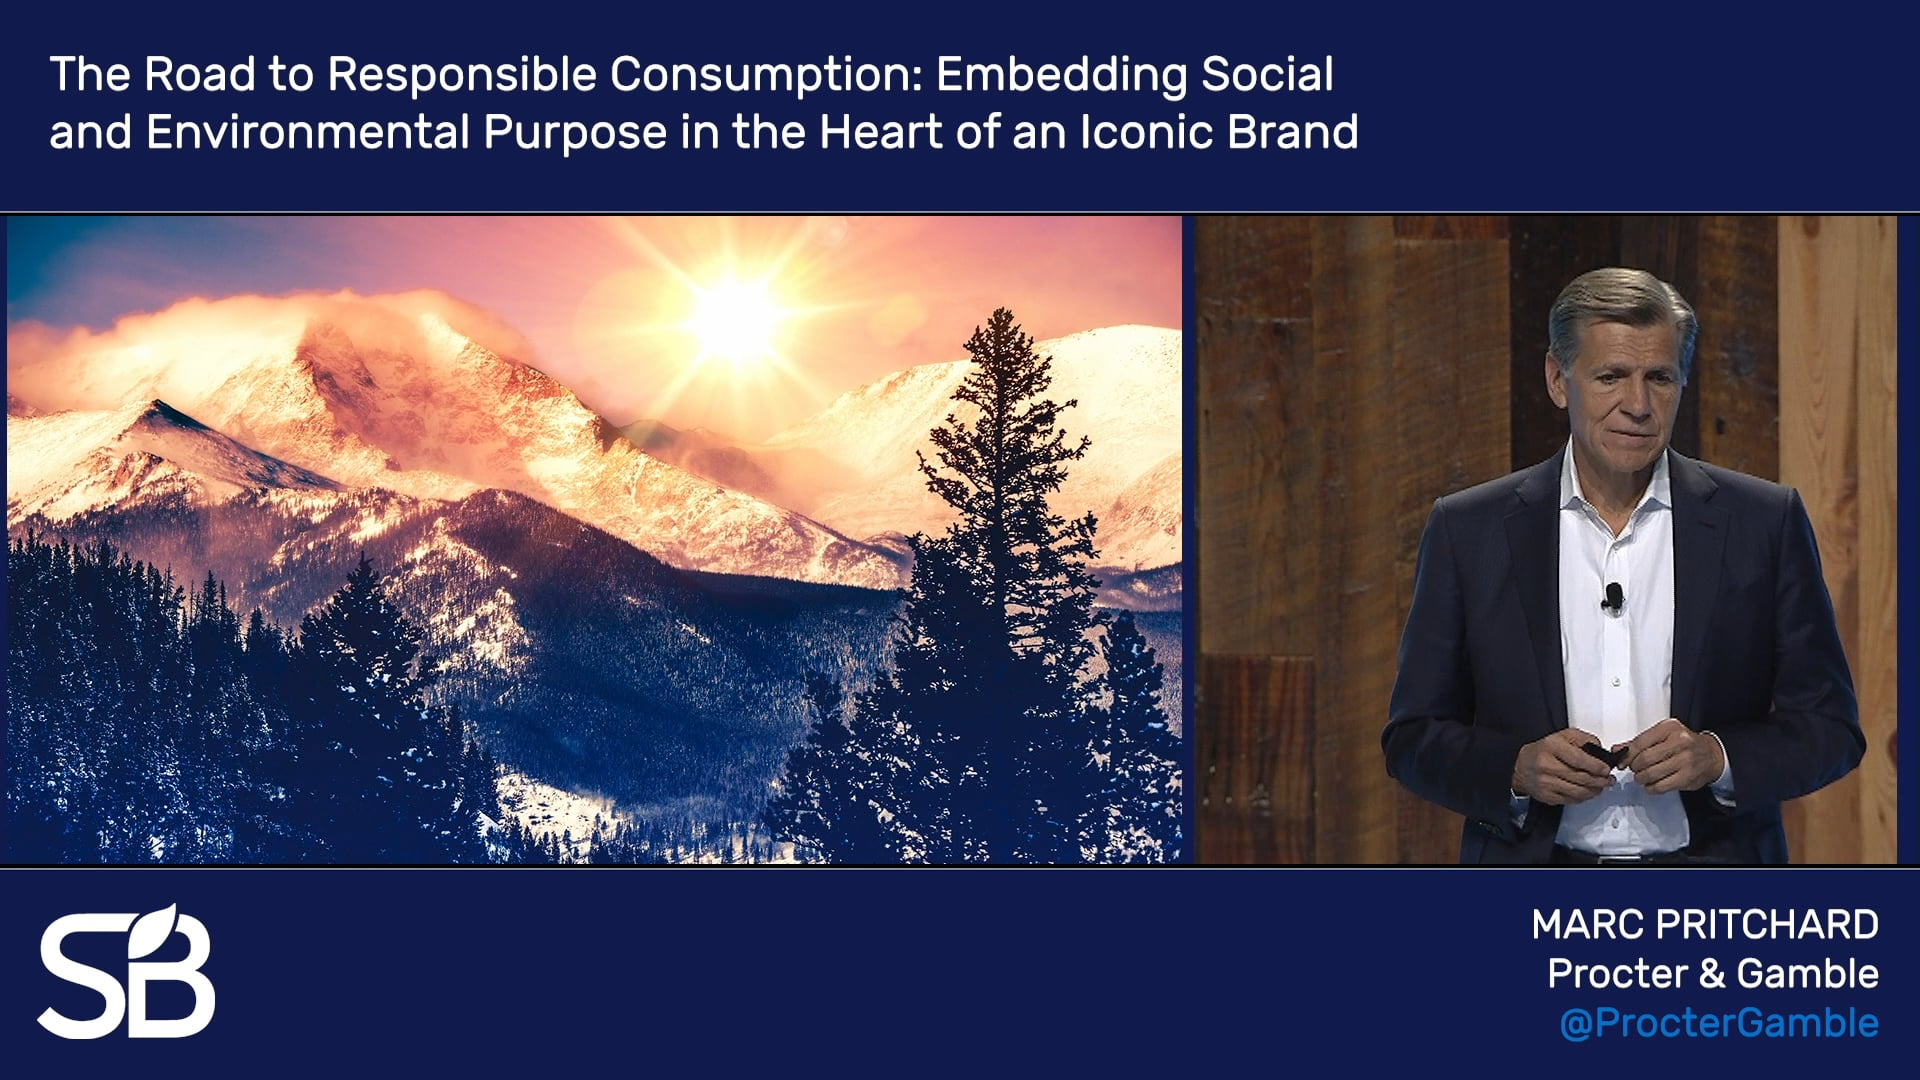 SB'18 Vancouver Keynote / The Road to Responsible Consumption: Embedding Social and Environmental Purpose in the Heart of an Iconic Brand